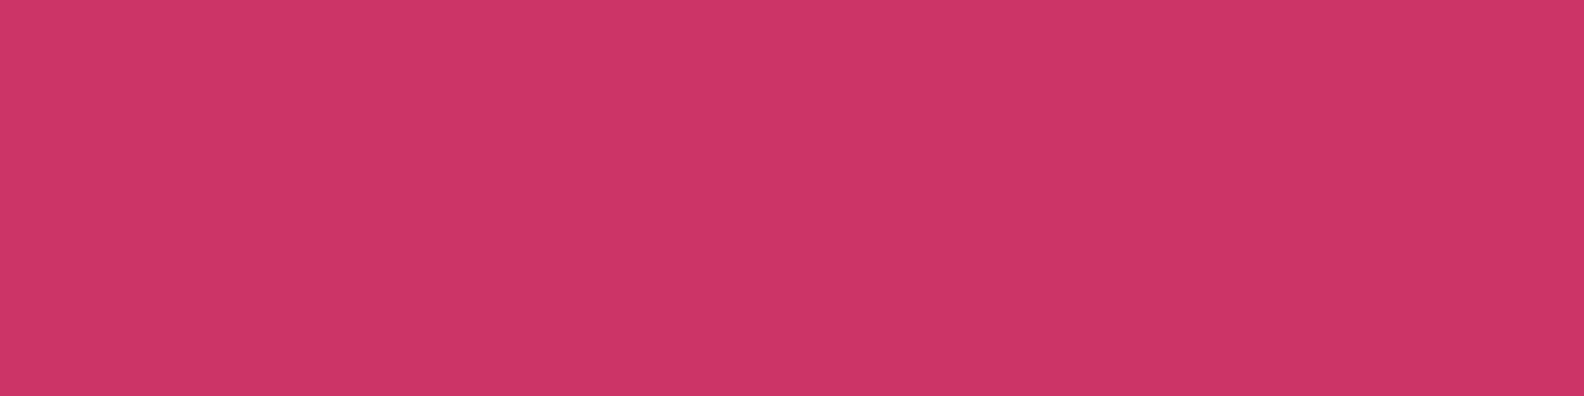 1584x396 Steel Pink Solid Color Background